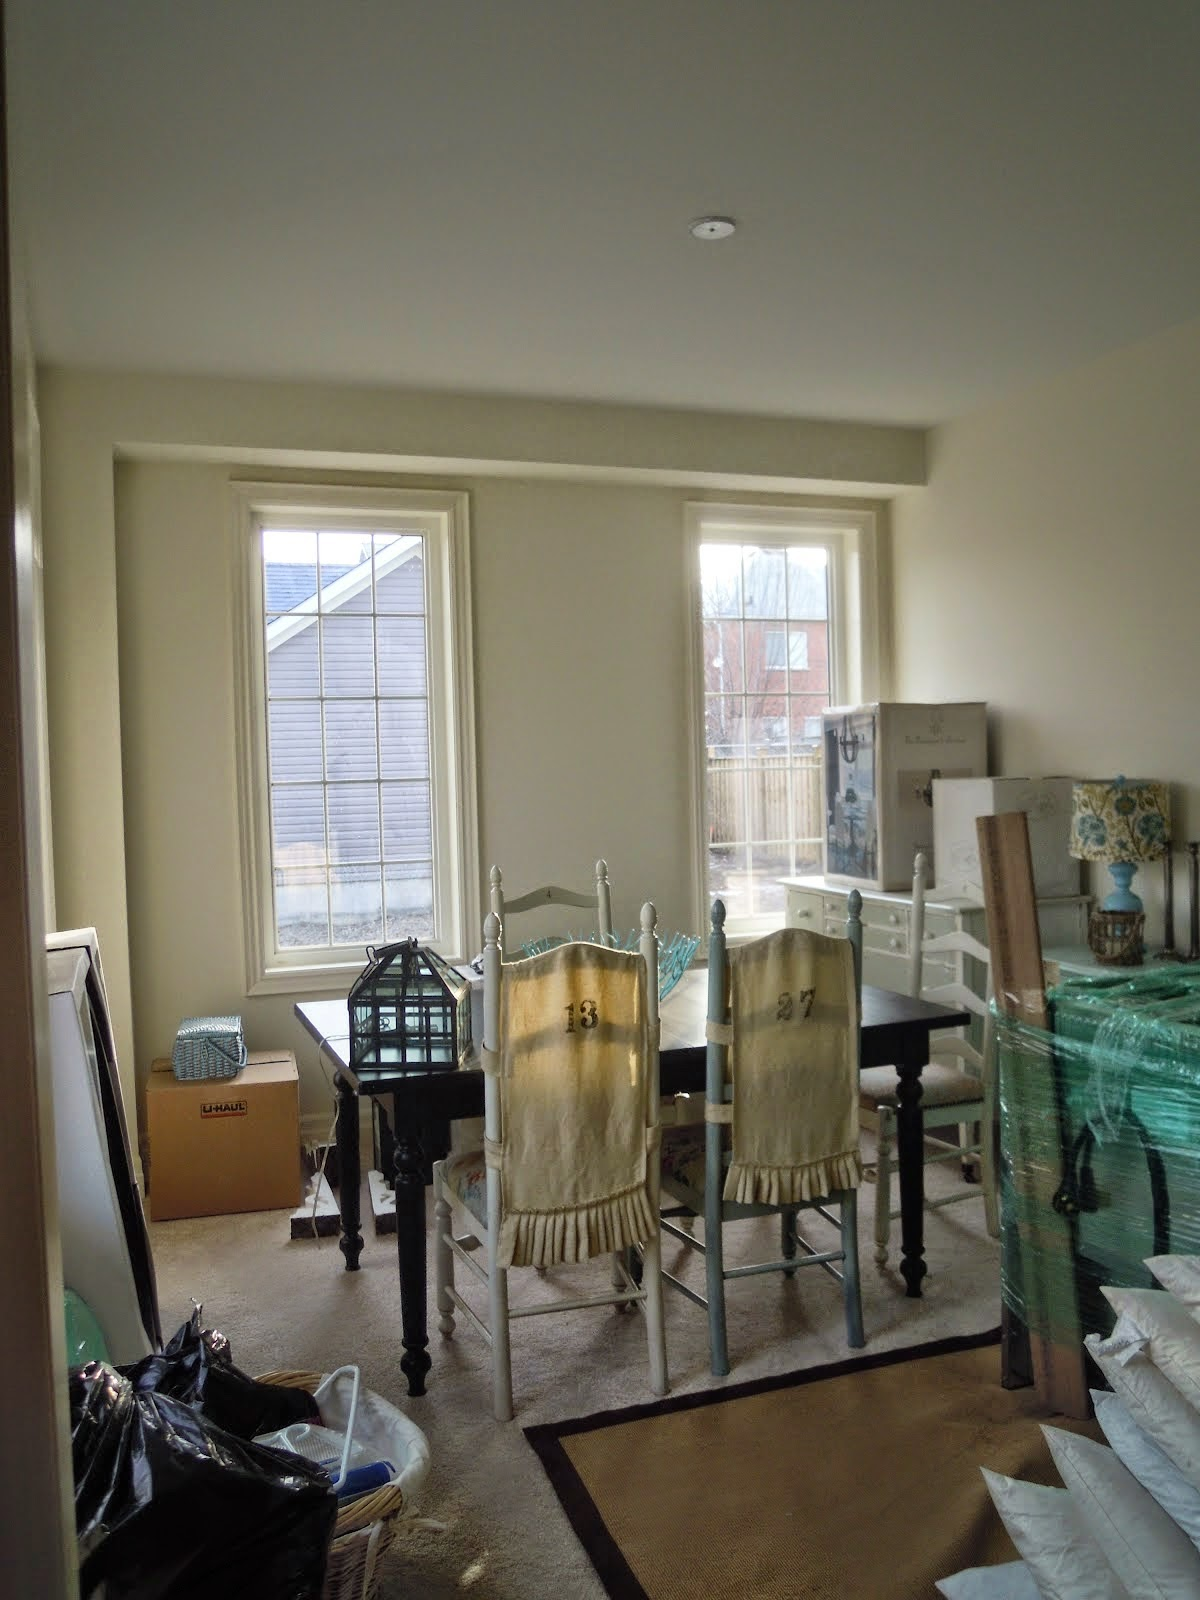 White Wood : My dining room makeover from start to finish ...